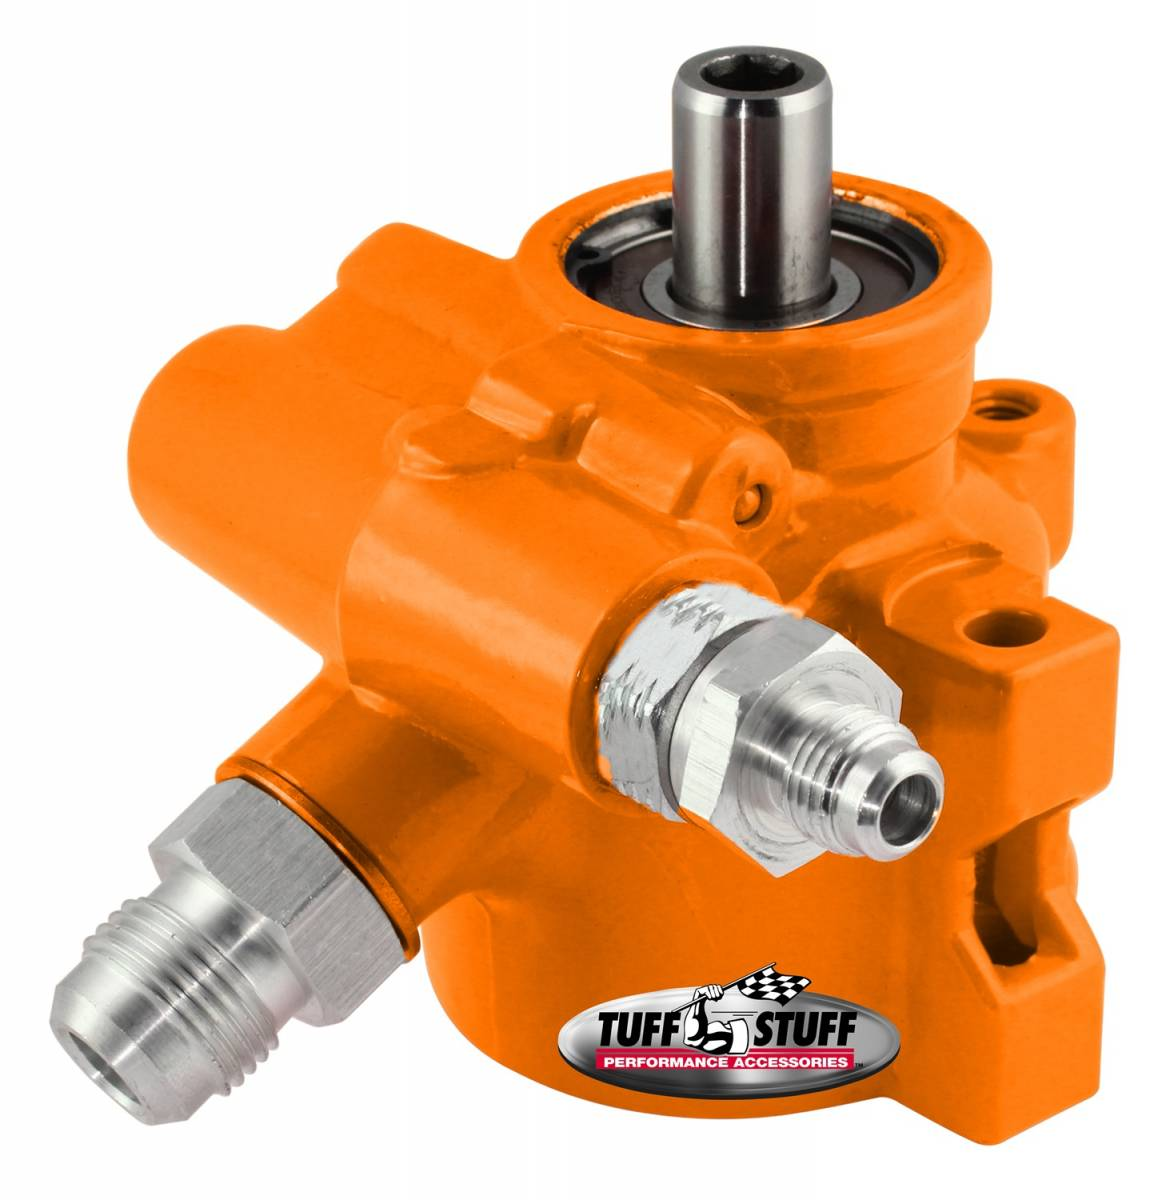 Tuff Stuff Performance - Type II Alum. Power Steering Pump AN-6 And AN-10 Fittings 8mm Through Hole Mounting Aluminum For Street Rods/Custom Vehicles w/Limited Engine Space Orange 6175ALORANGE